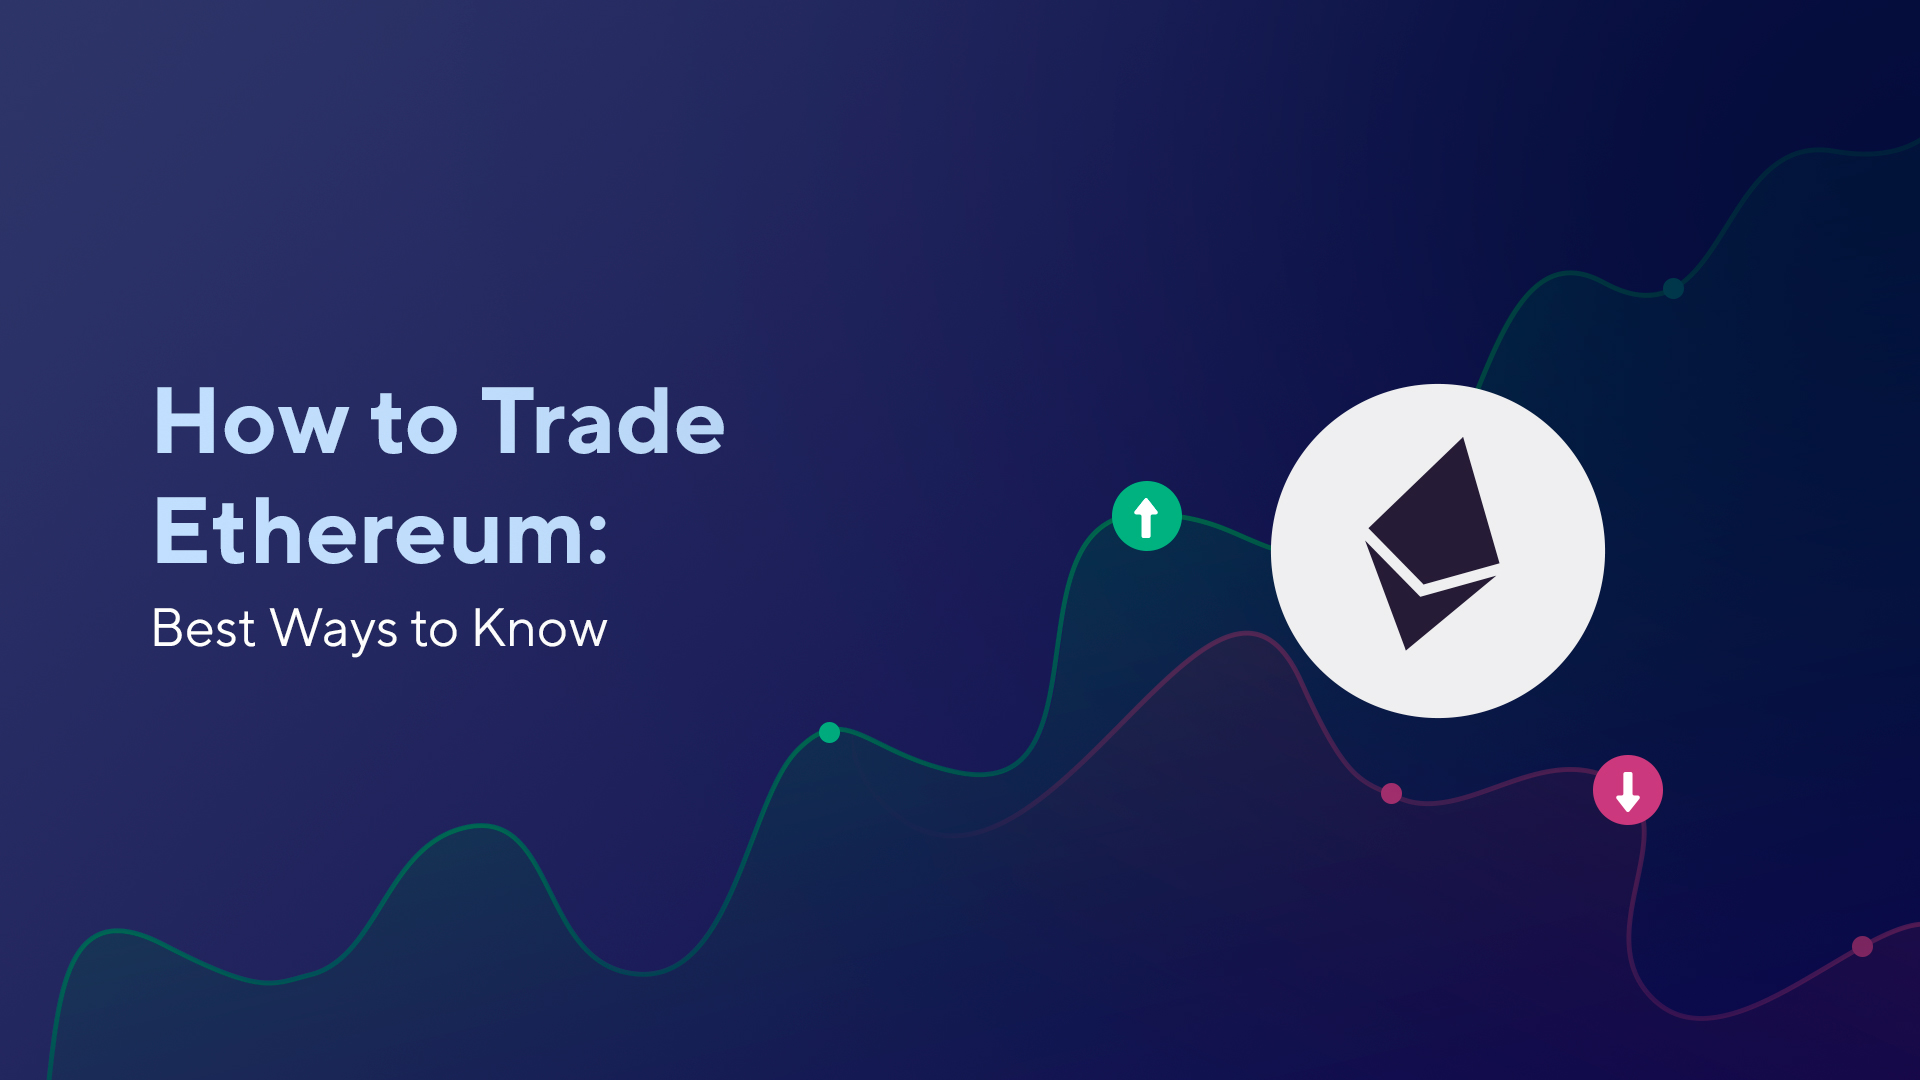 How to Trade Ethereum: Best Ways to Know